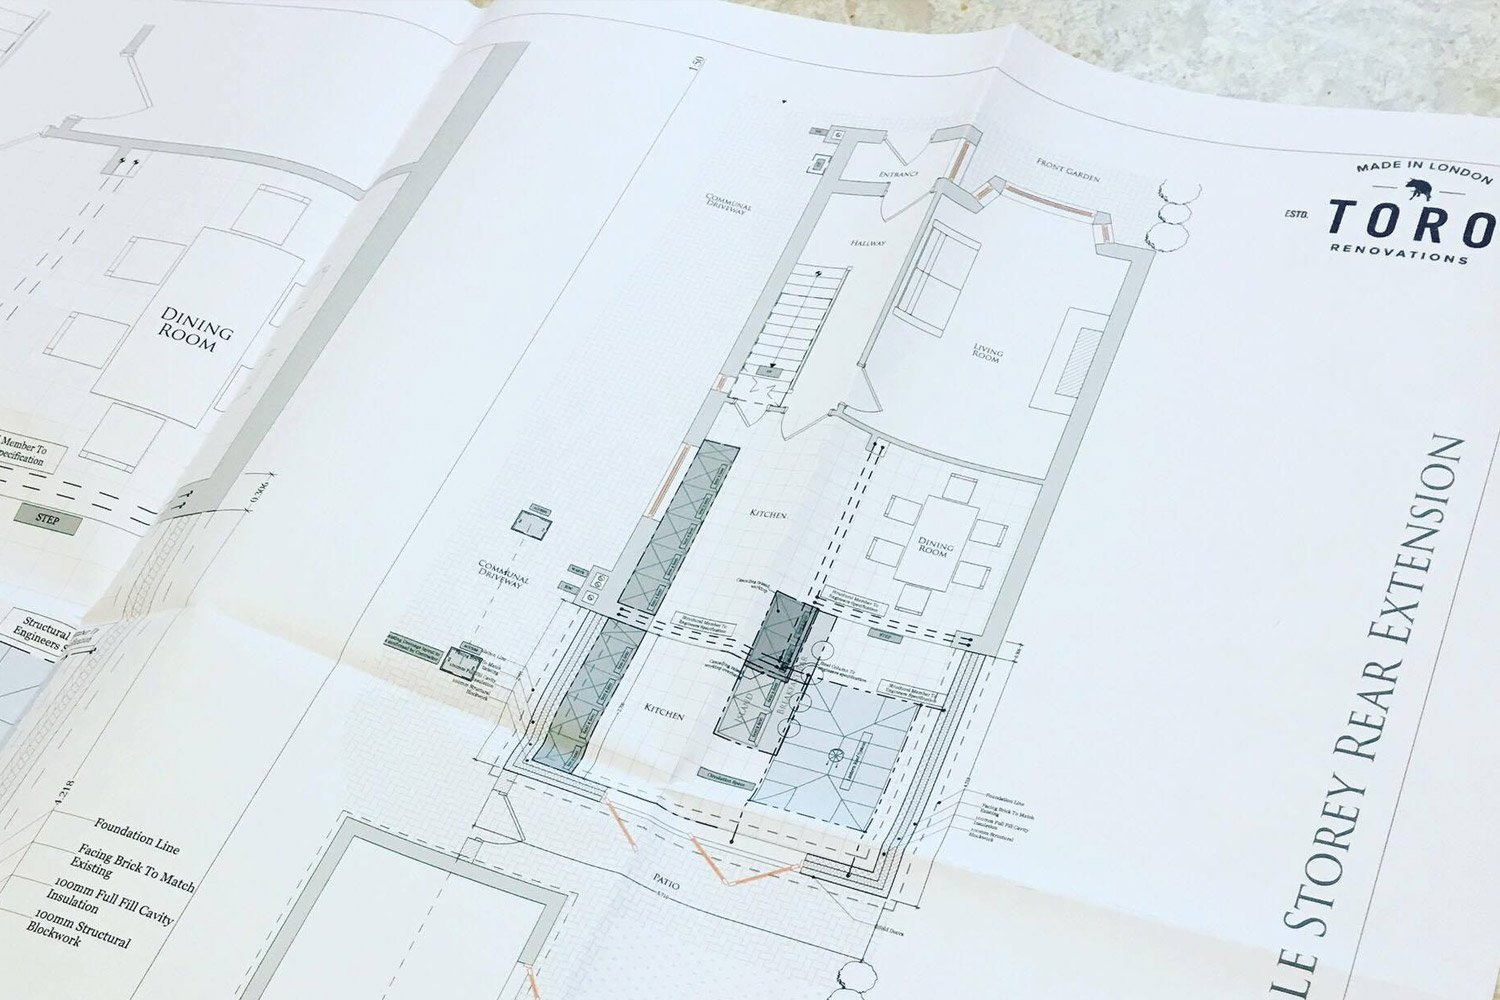 Building Plans by Toro Renovations Ltd